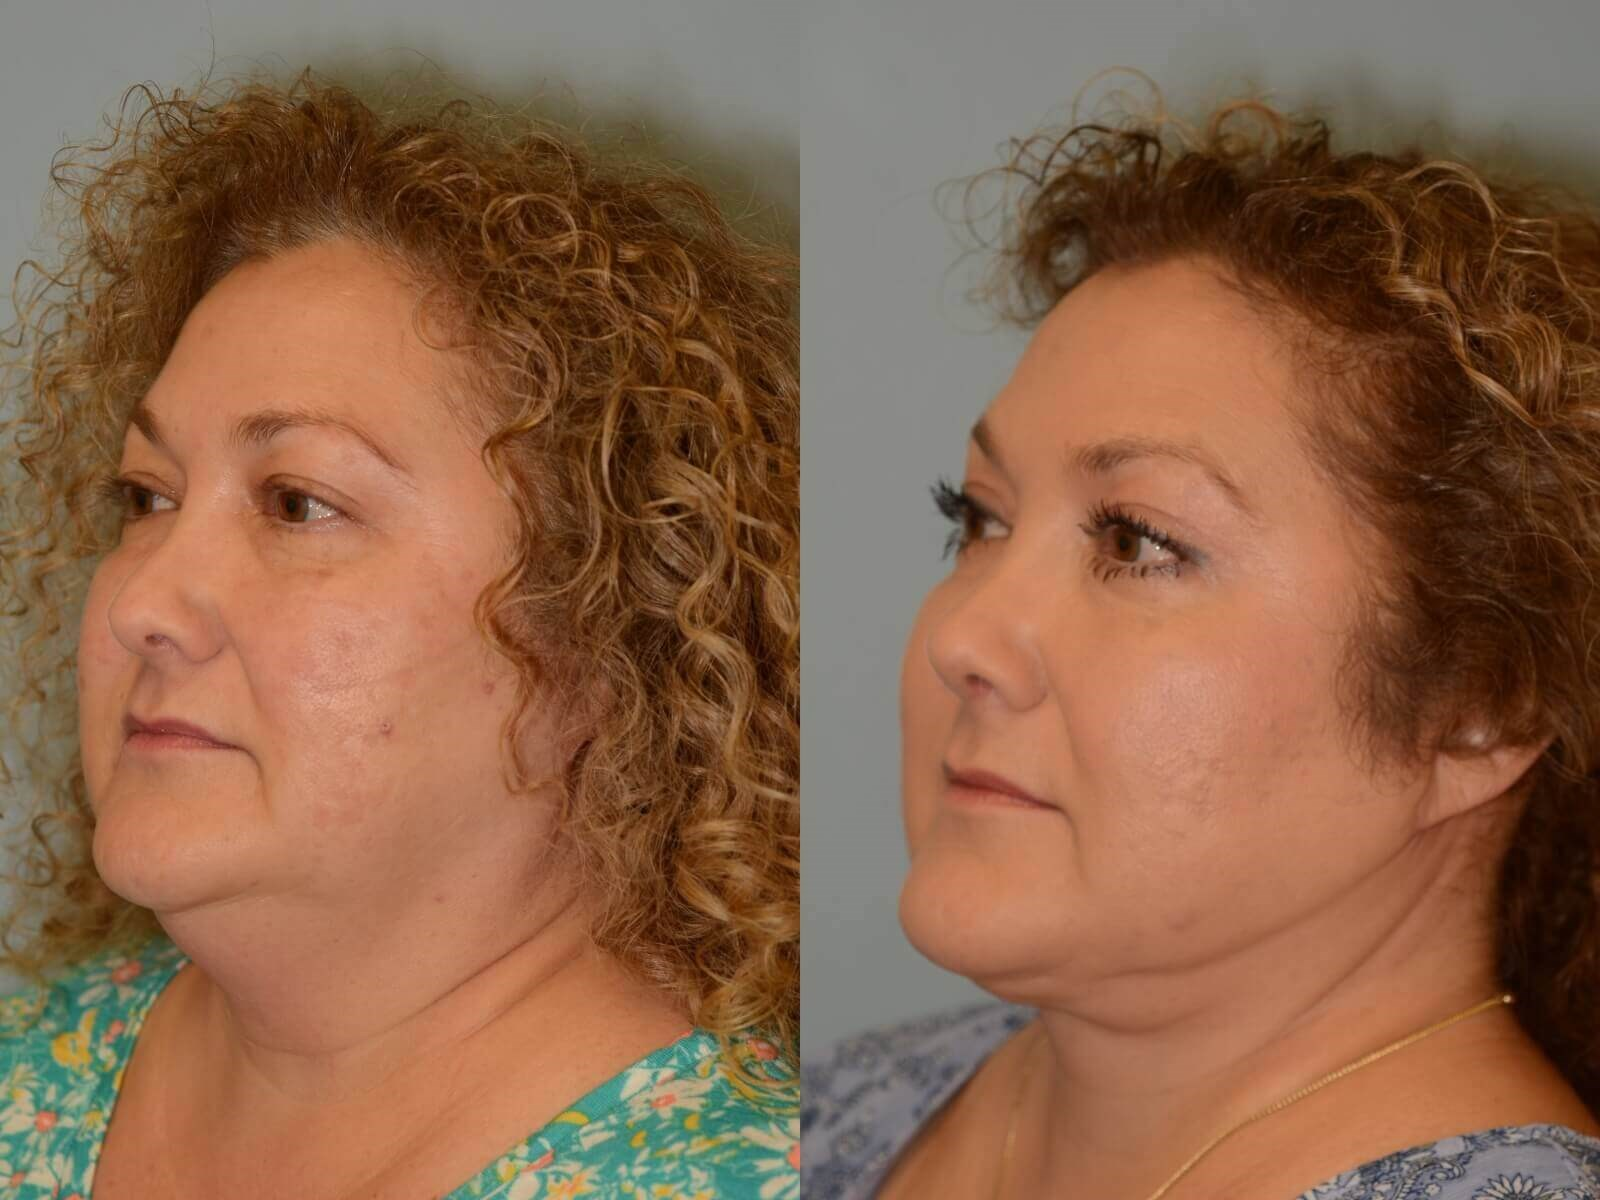 Jaw dropping Jaw definition Before and After